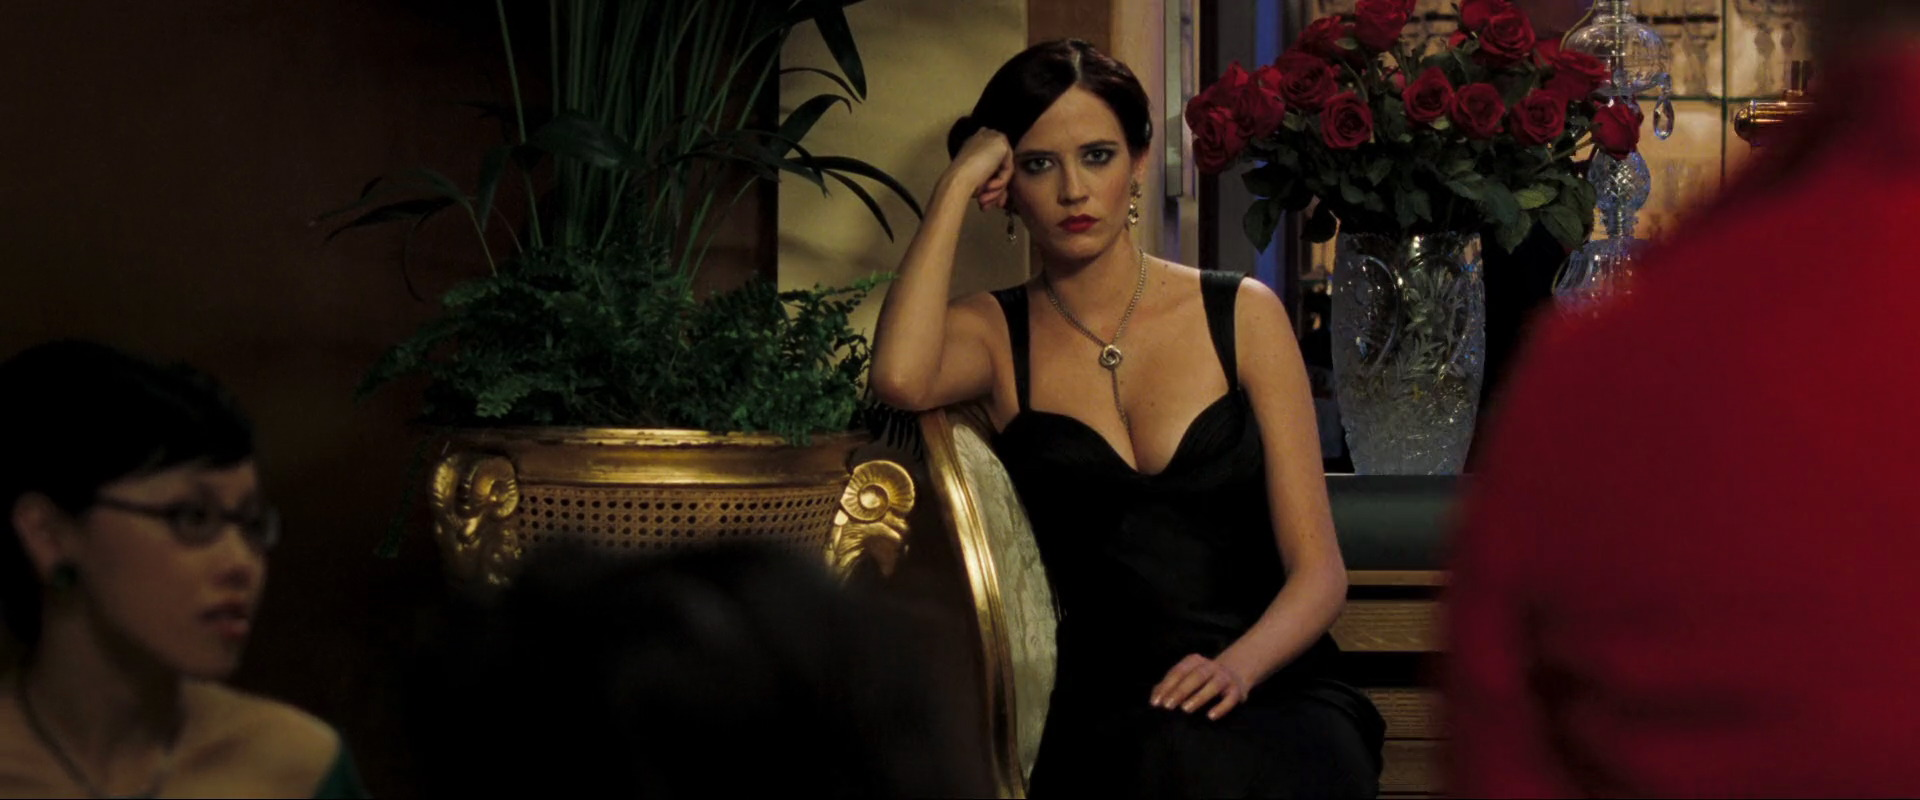 Does vesper die in casino royale las vegas casino links